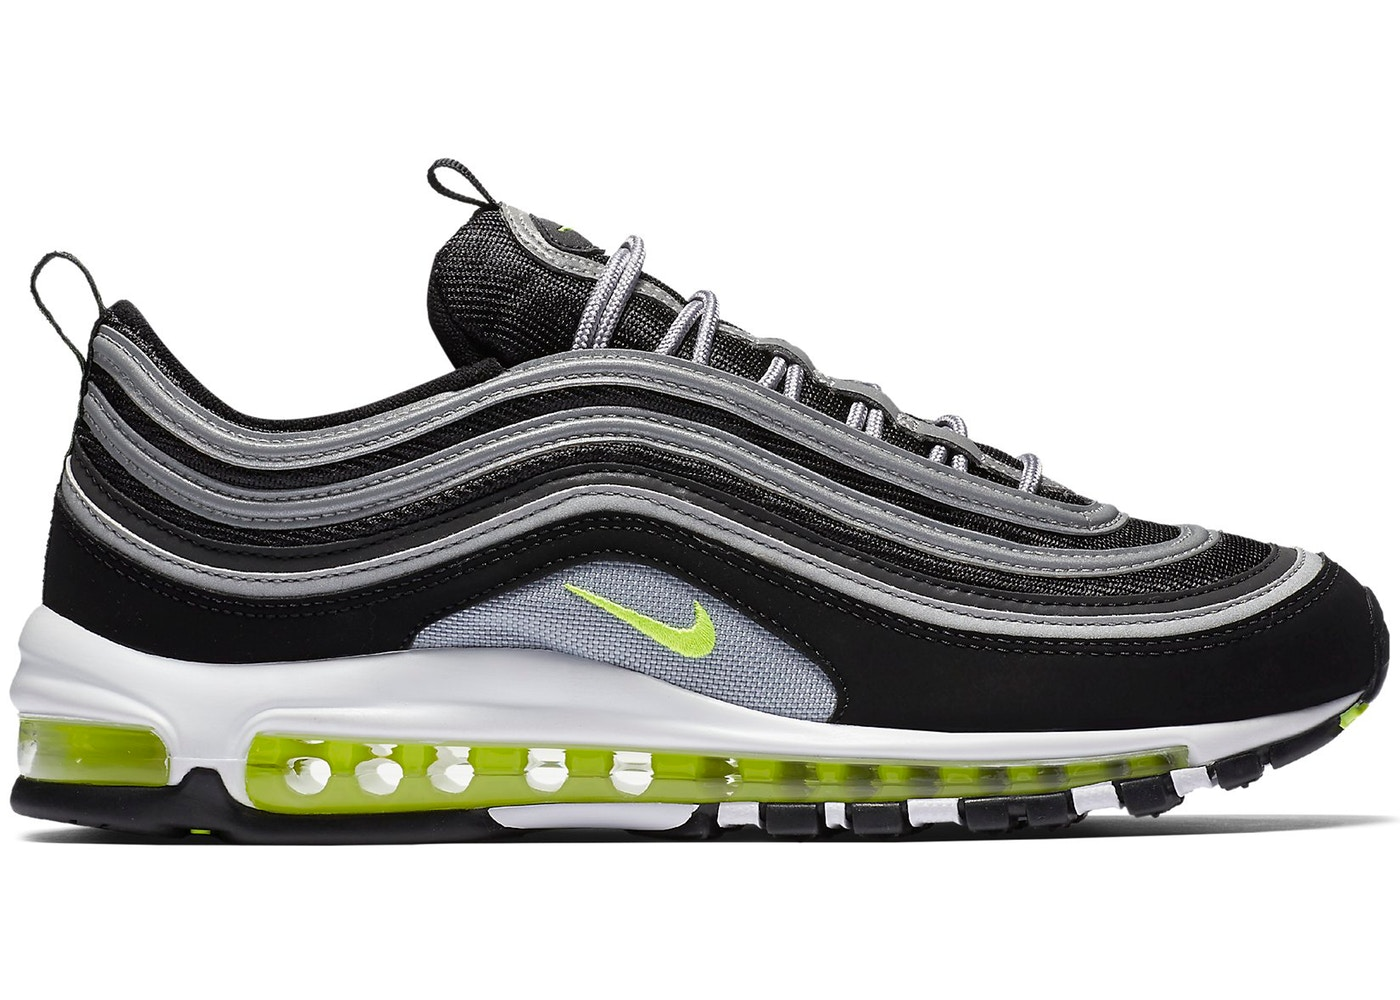 The Nike Air Max 97 Silver Bullet Is Back—But Not For Long